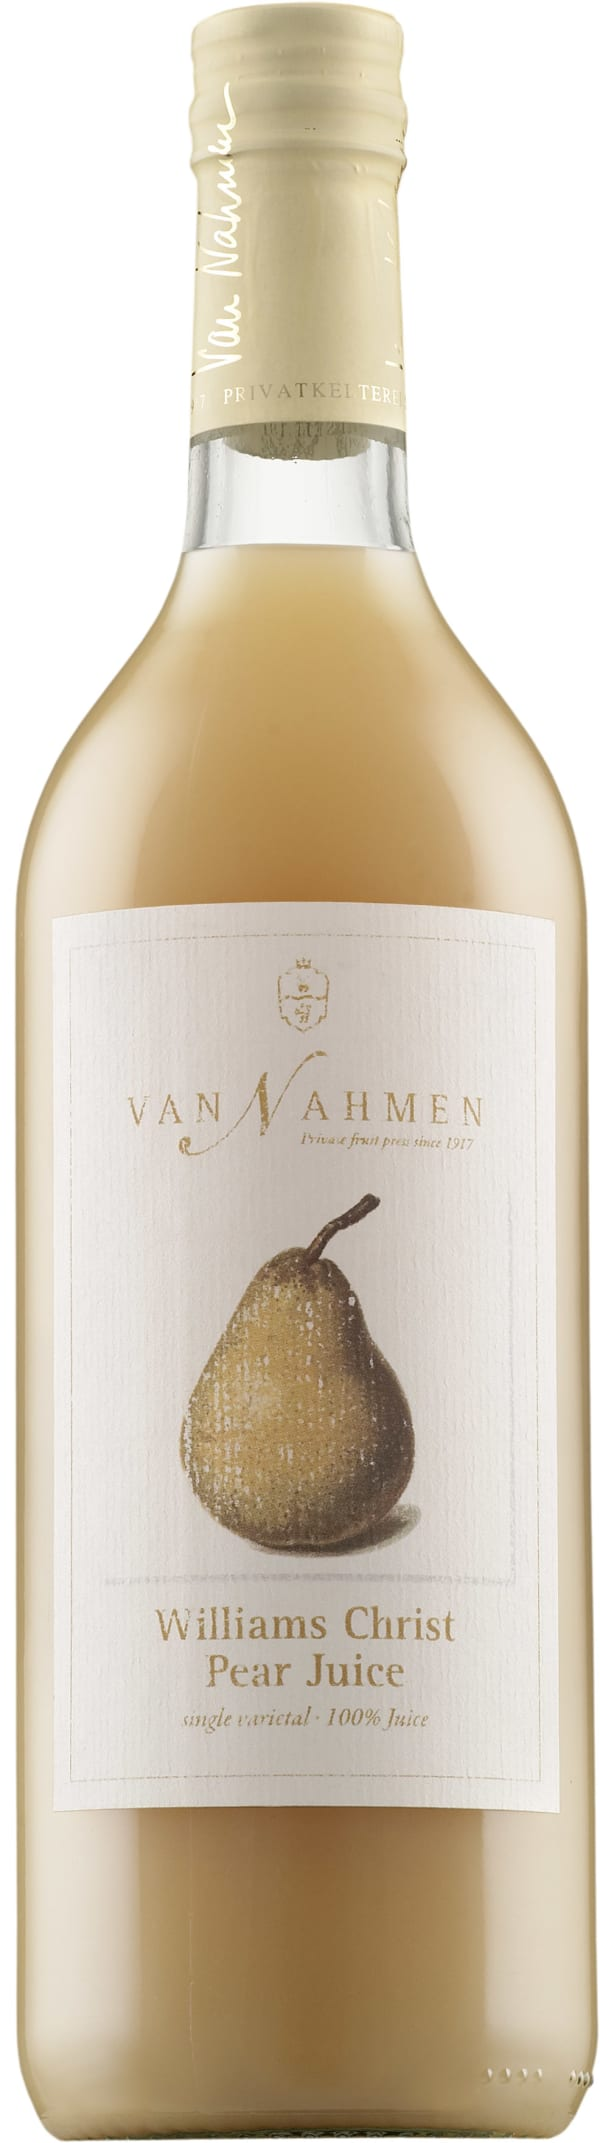 Van Nahmen Williams Christ Pear Juice